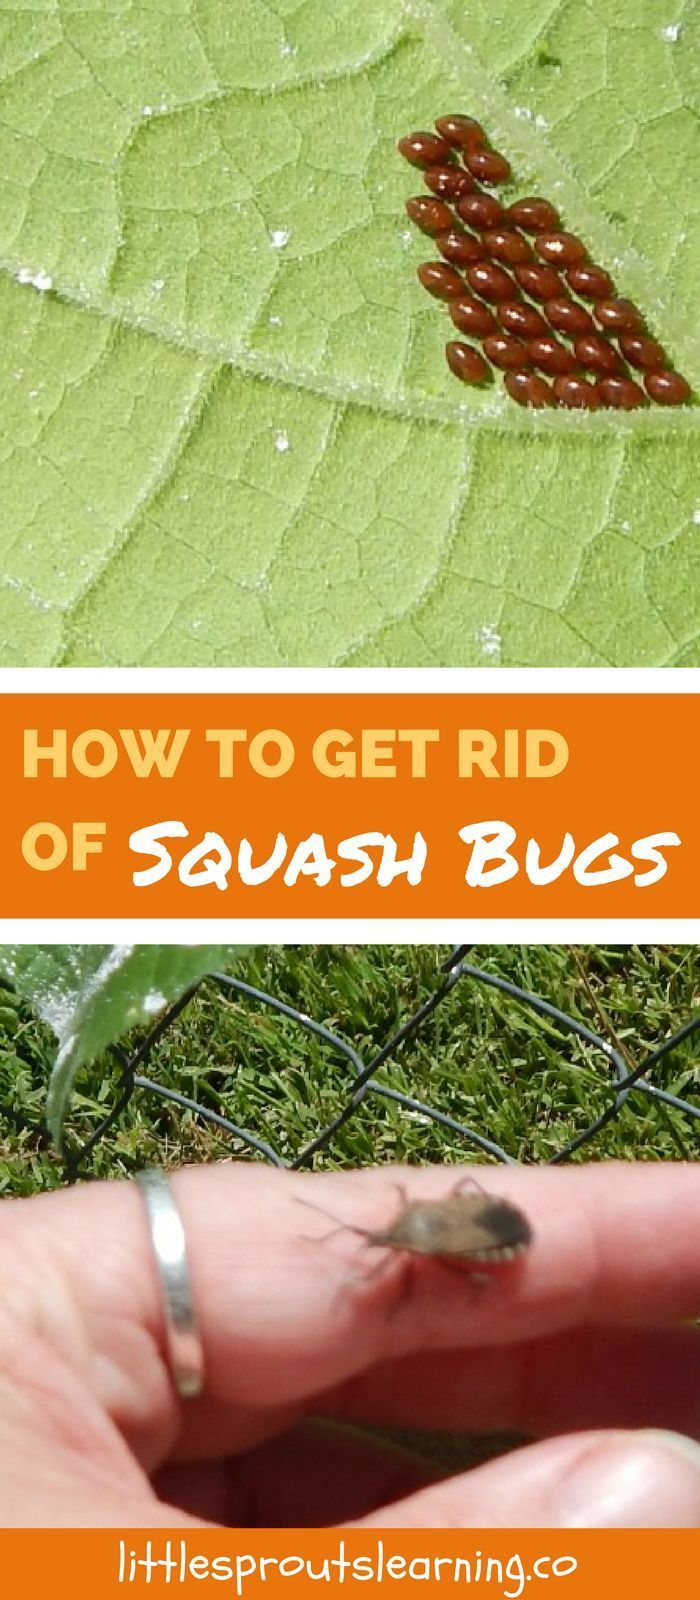 How to get rid of squash bugs gardening garden pests - How to get rid of bugs in garden ...